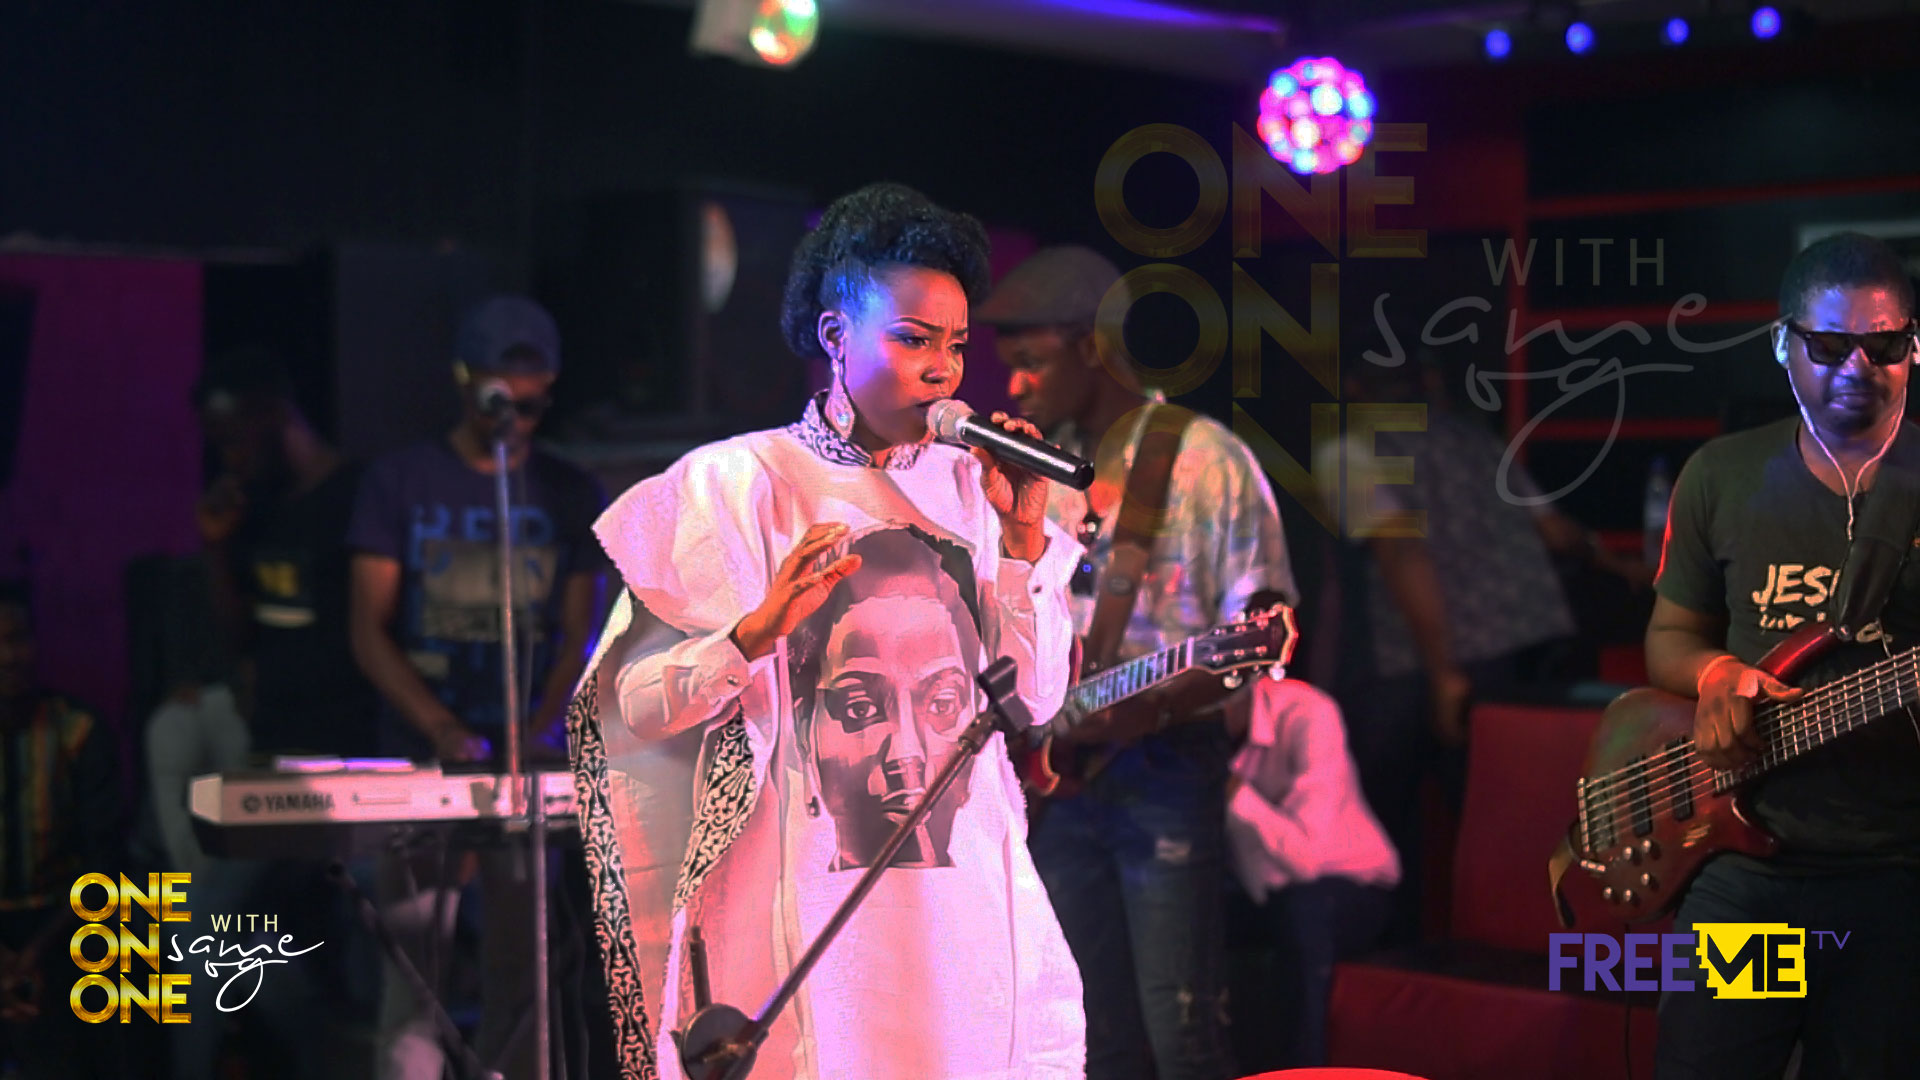 Photos from ONE ON ONE with Same OG [@its_sameog] (4)